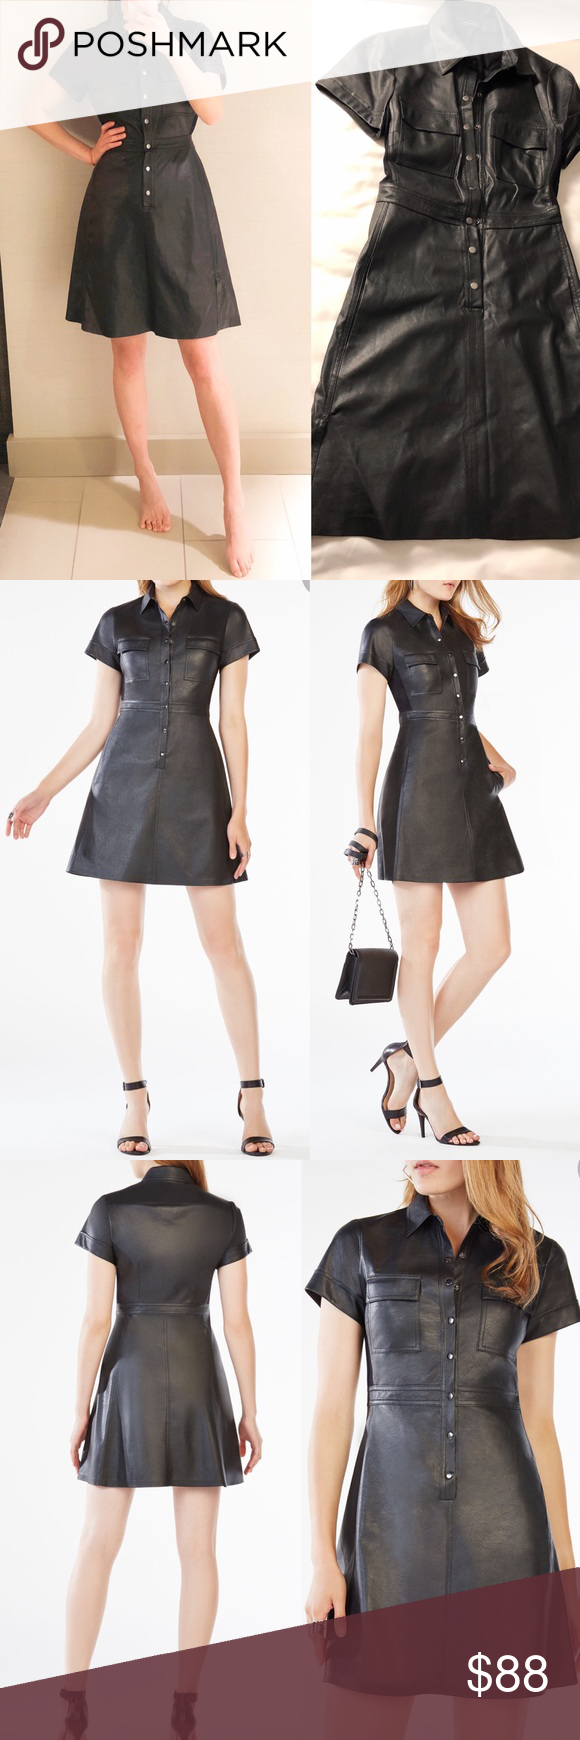 ddeac1fa475 BCBG Stephana Faux-Leather Shirt Dress black Fit like a glove! Flexible